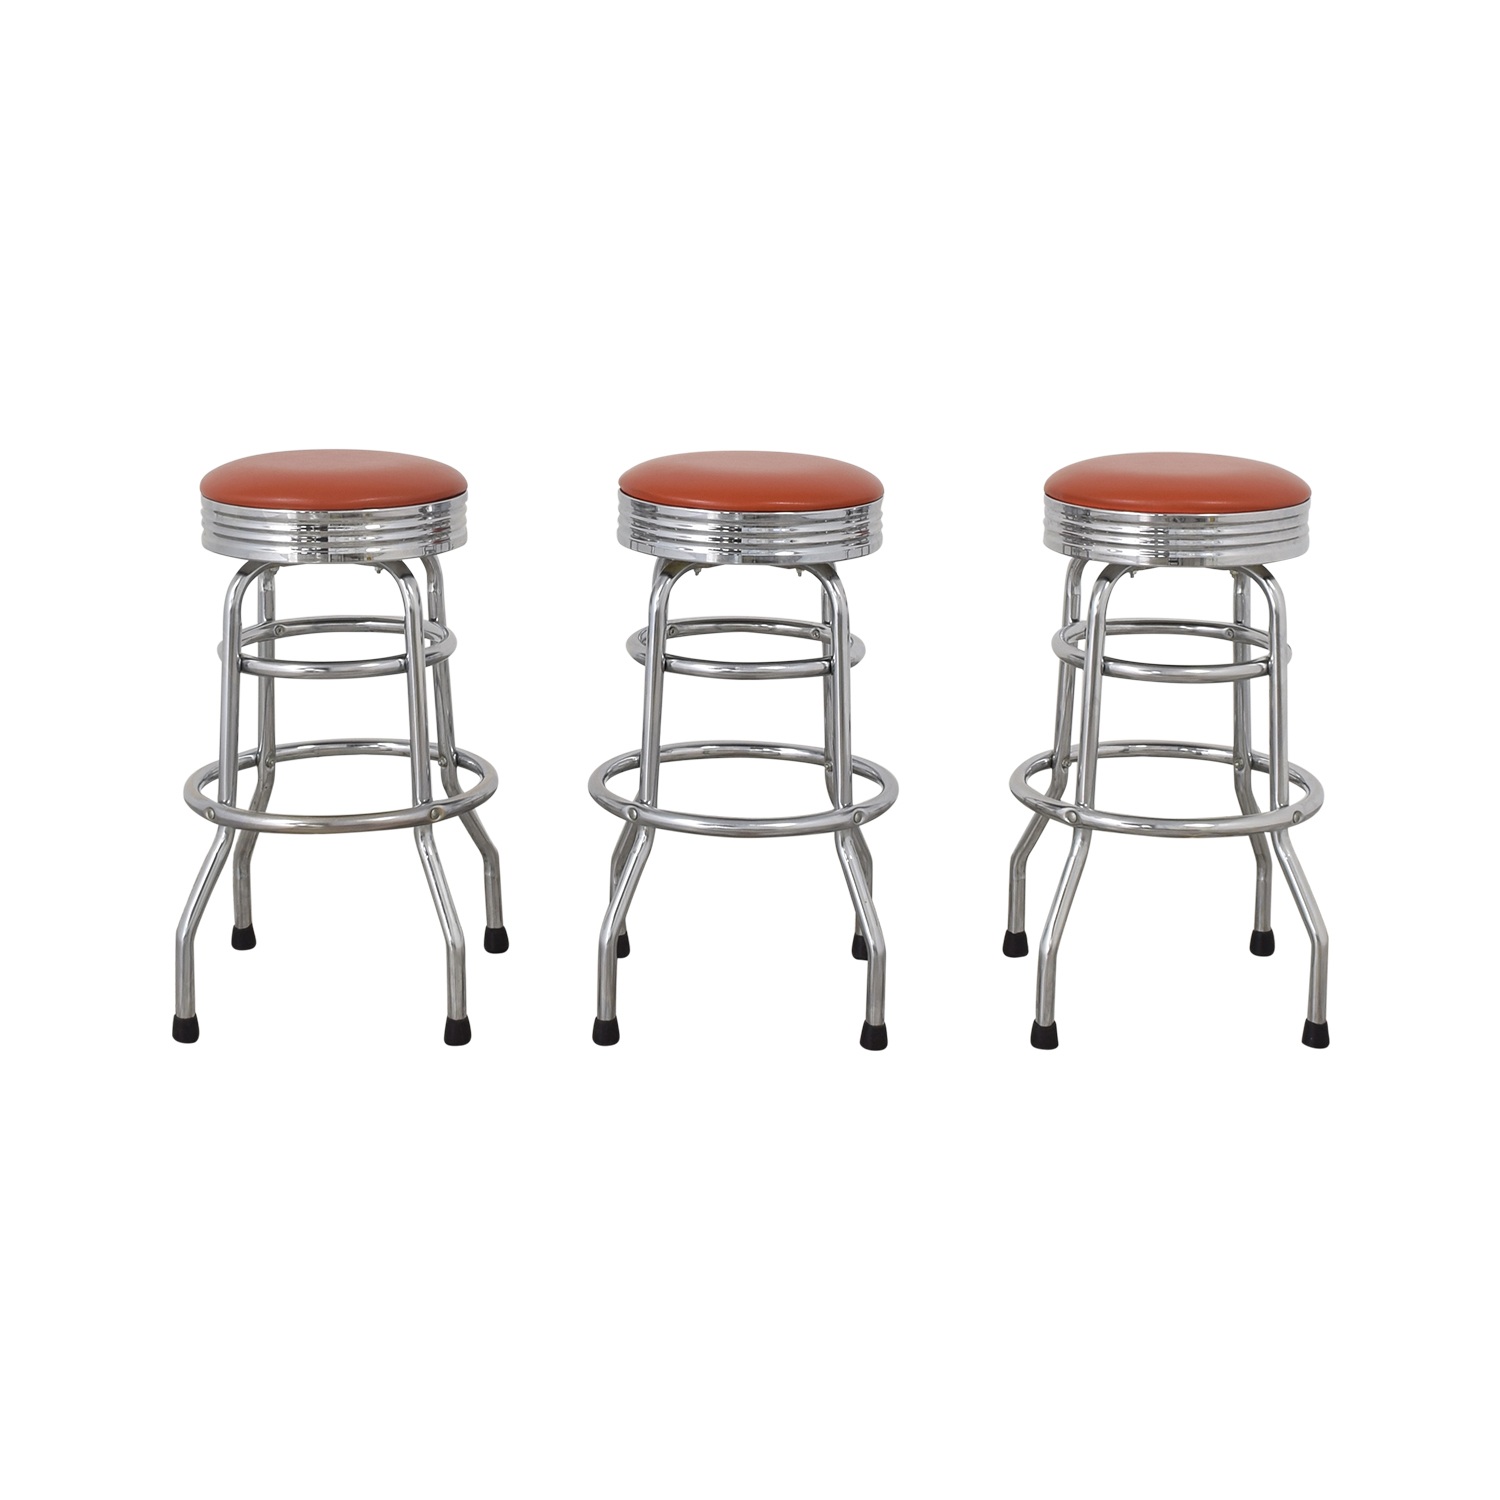 Retro Diner Bar Stools second hand